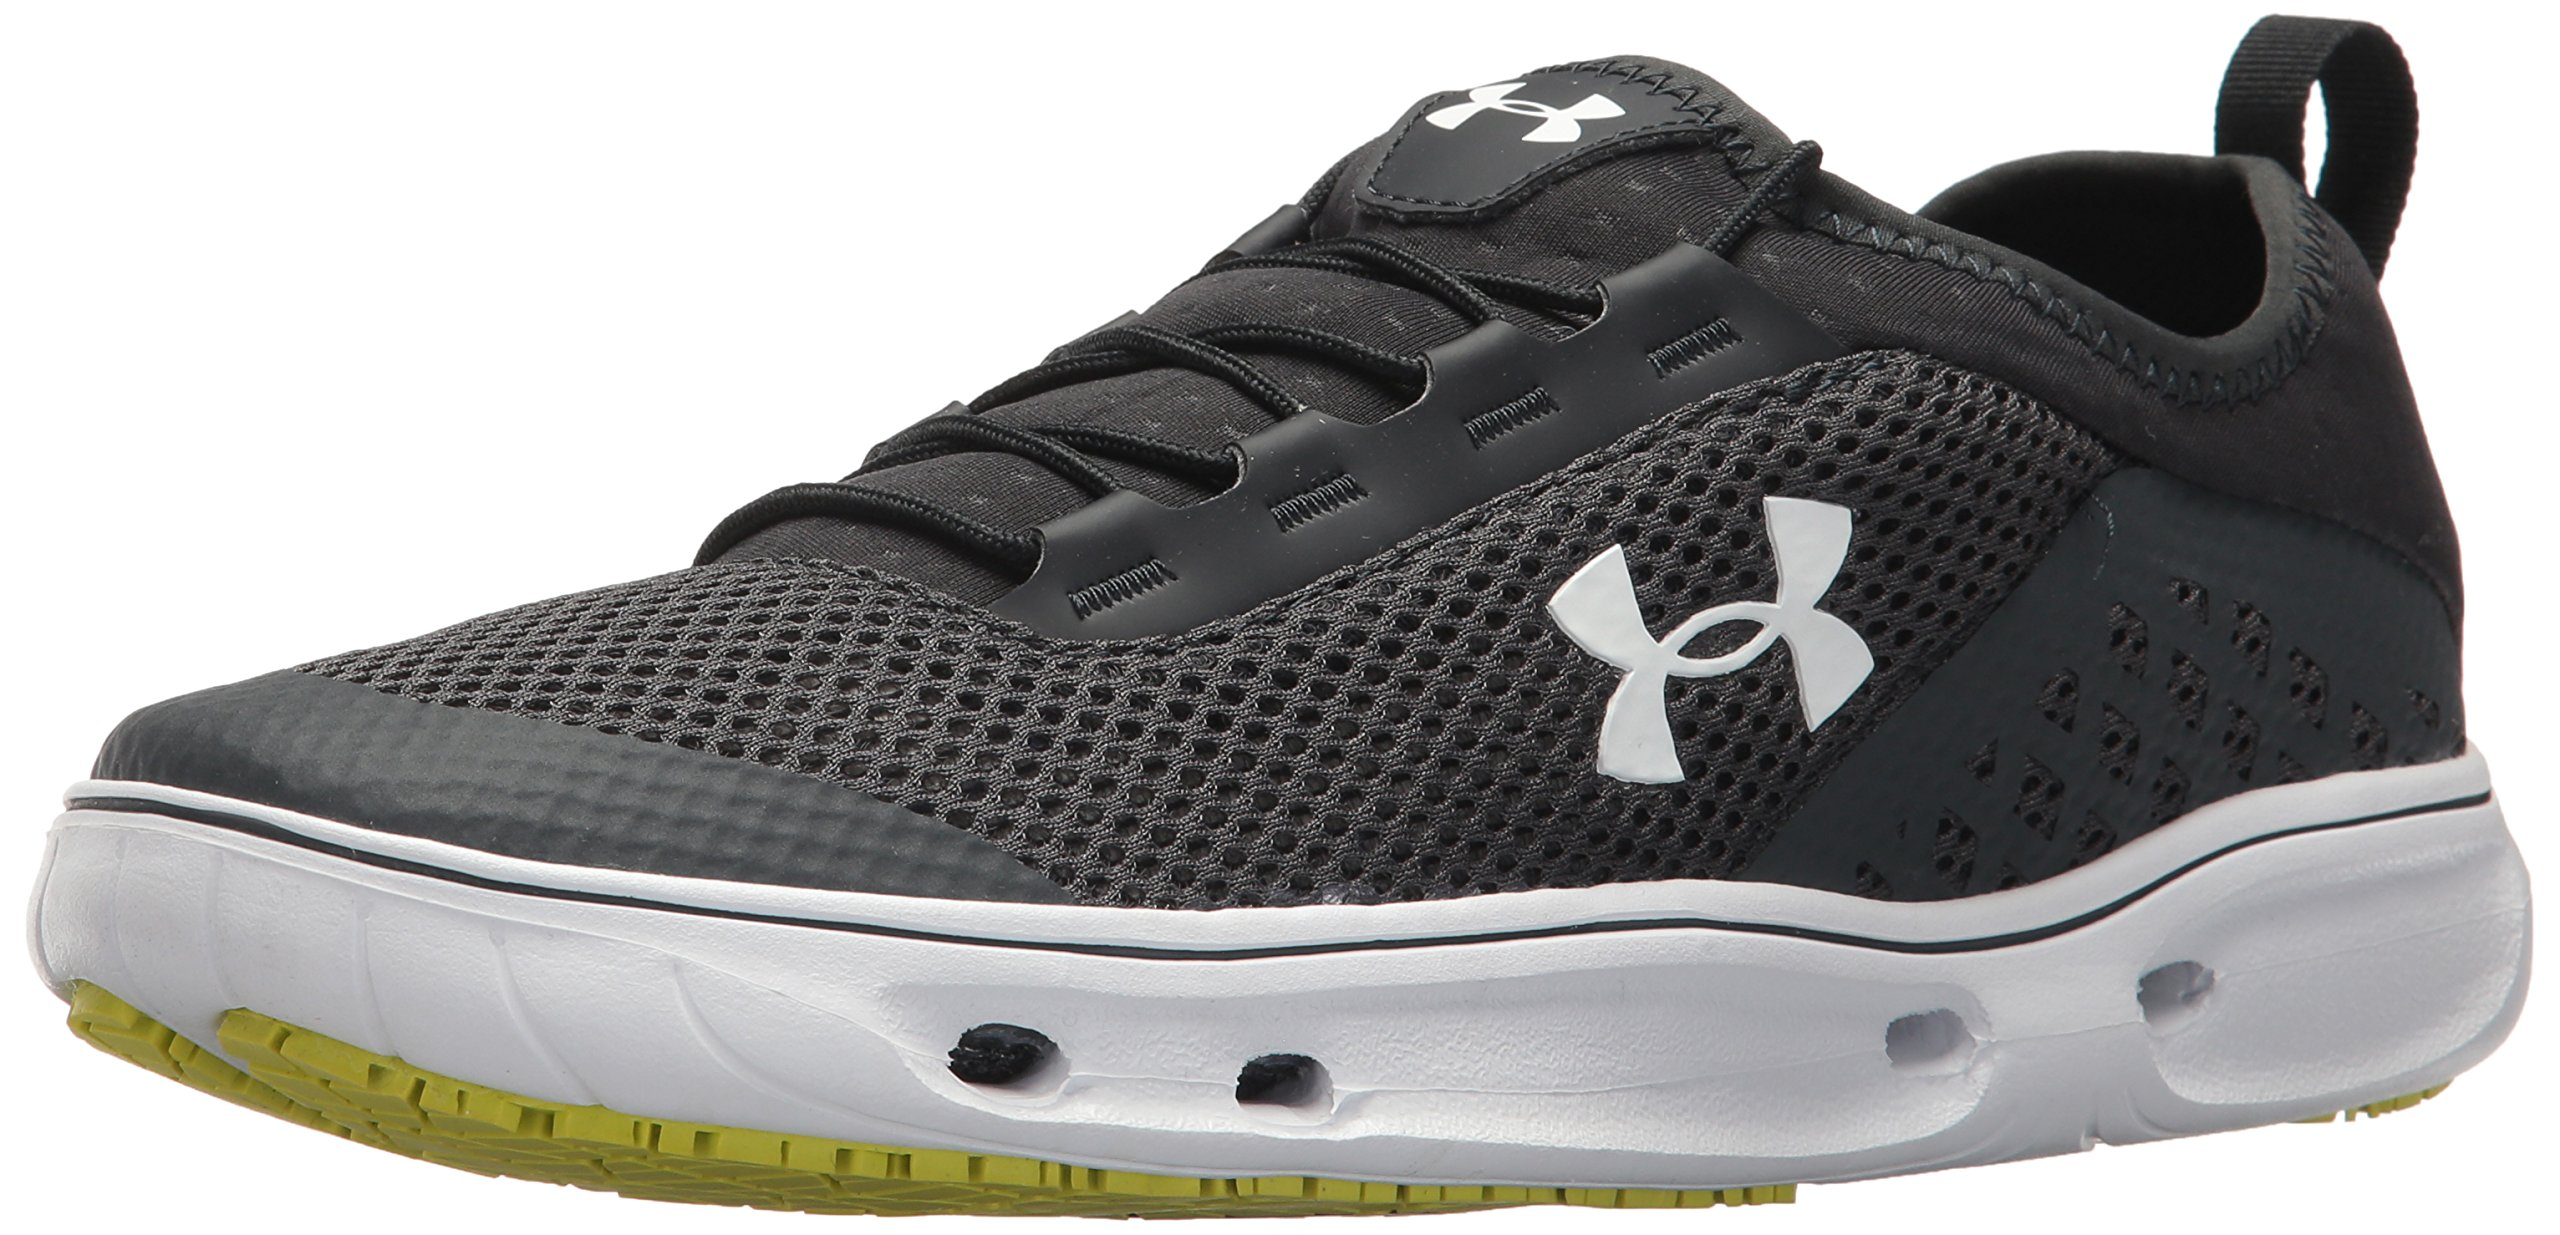 Under Armour Outerwear Men's Kilchis Sneaker, Anthracite (100)/White, 11